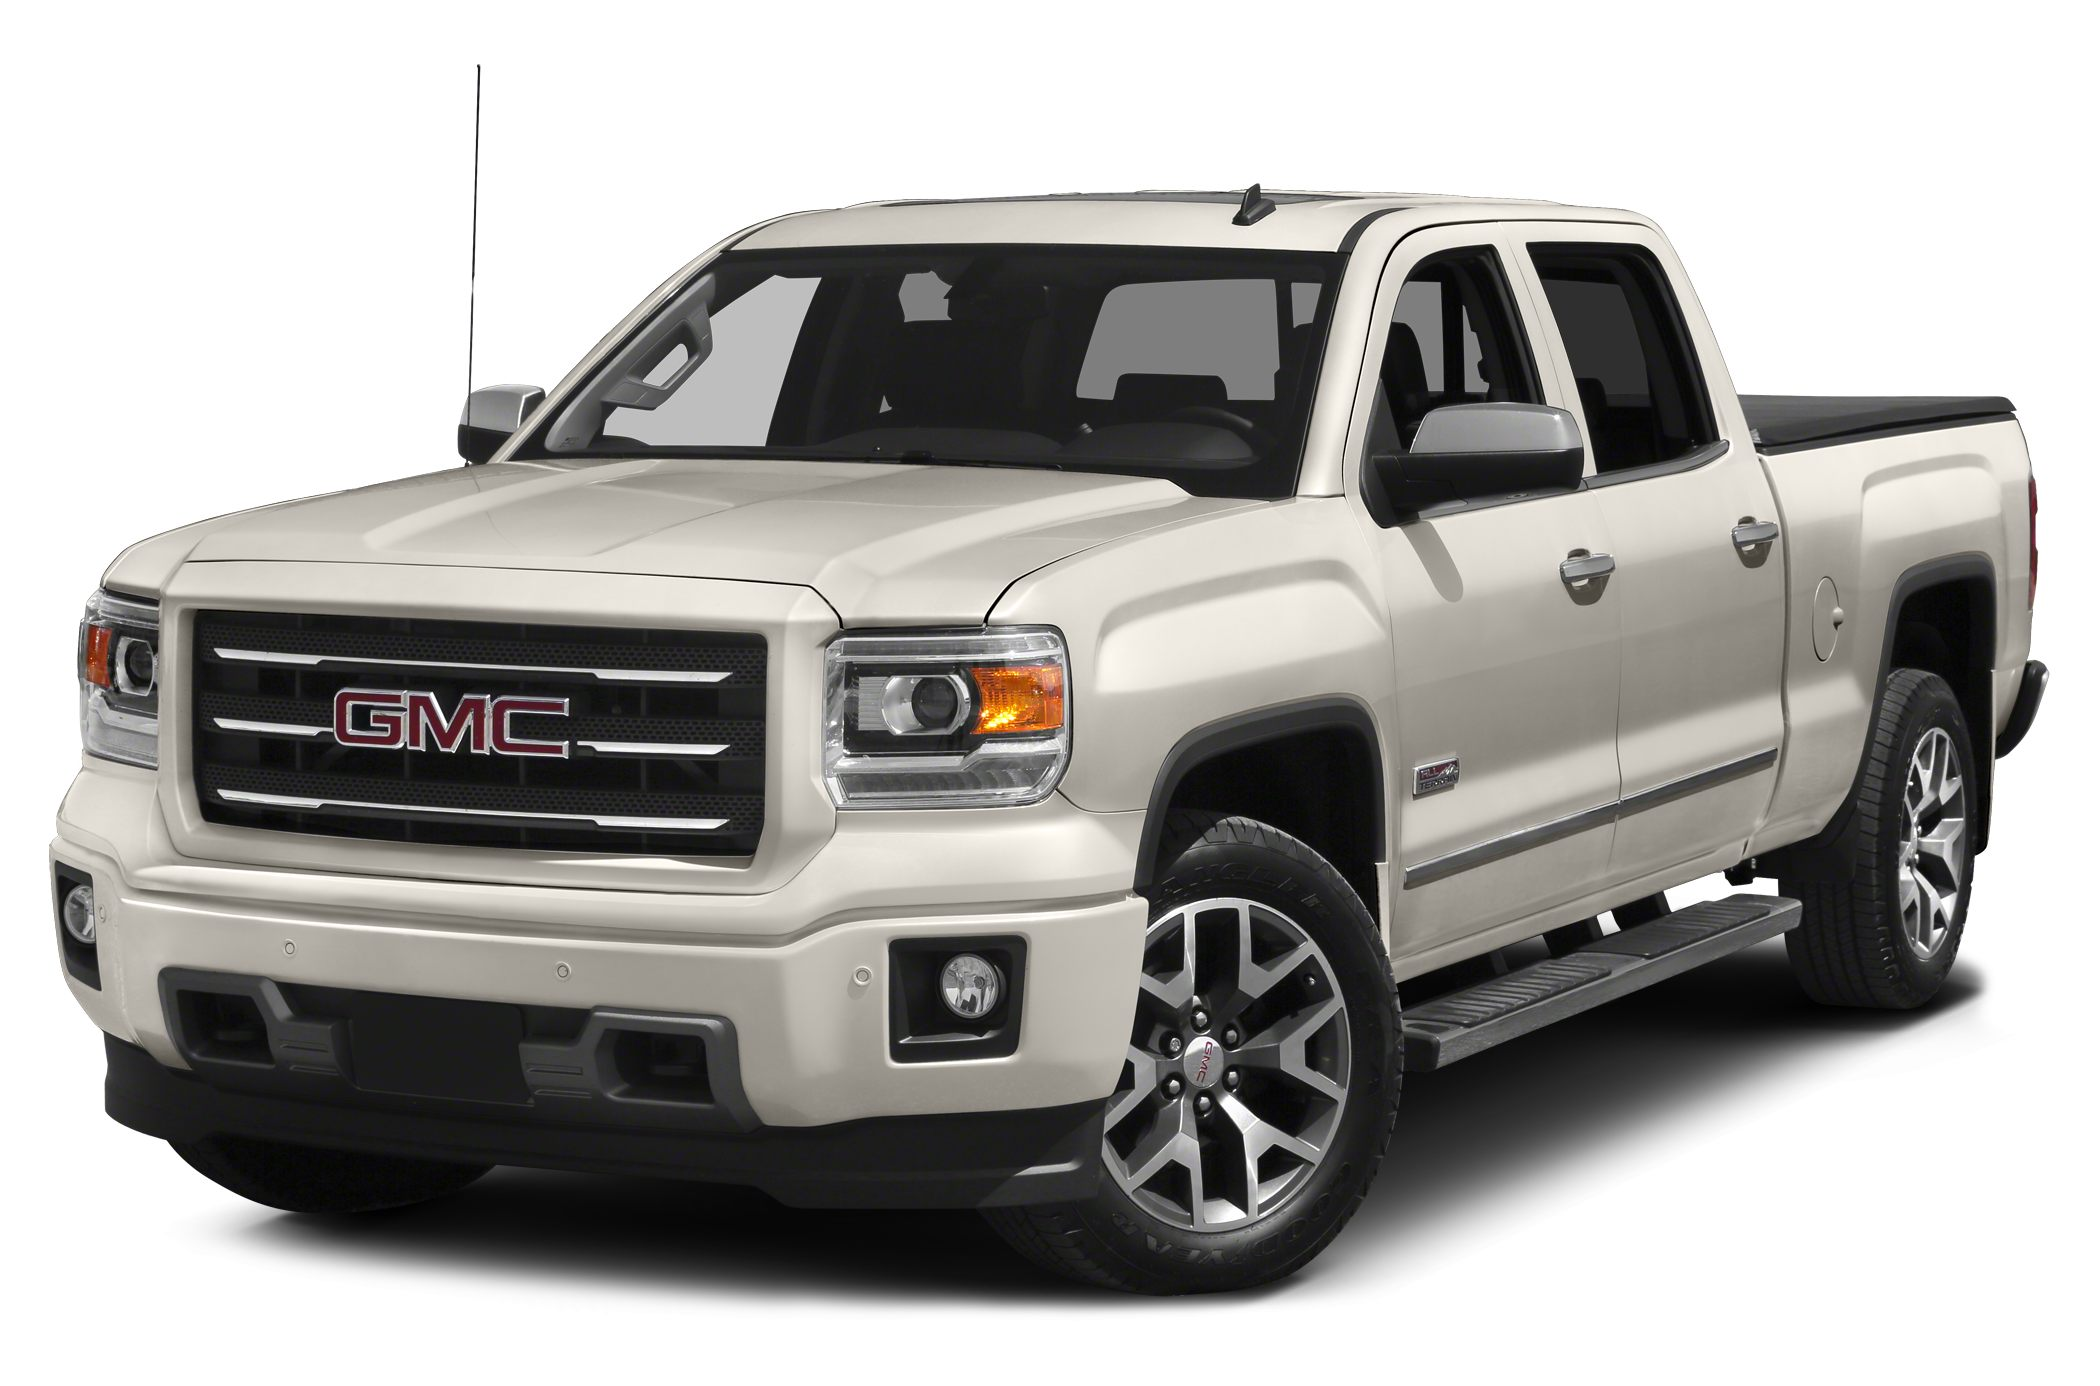 2014 GMC Sierra 1500 SLE 6-Speed Automatic Electronic with Overdrive Flex Fuel Crew Cab Your qu